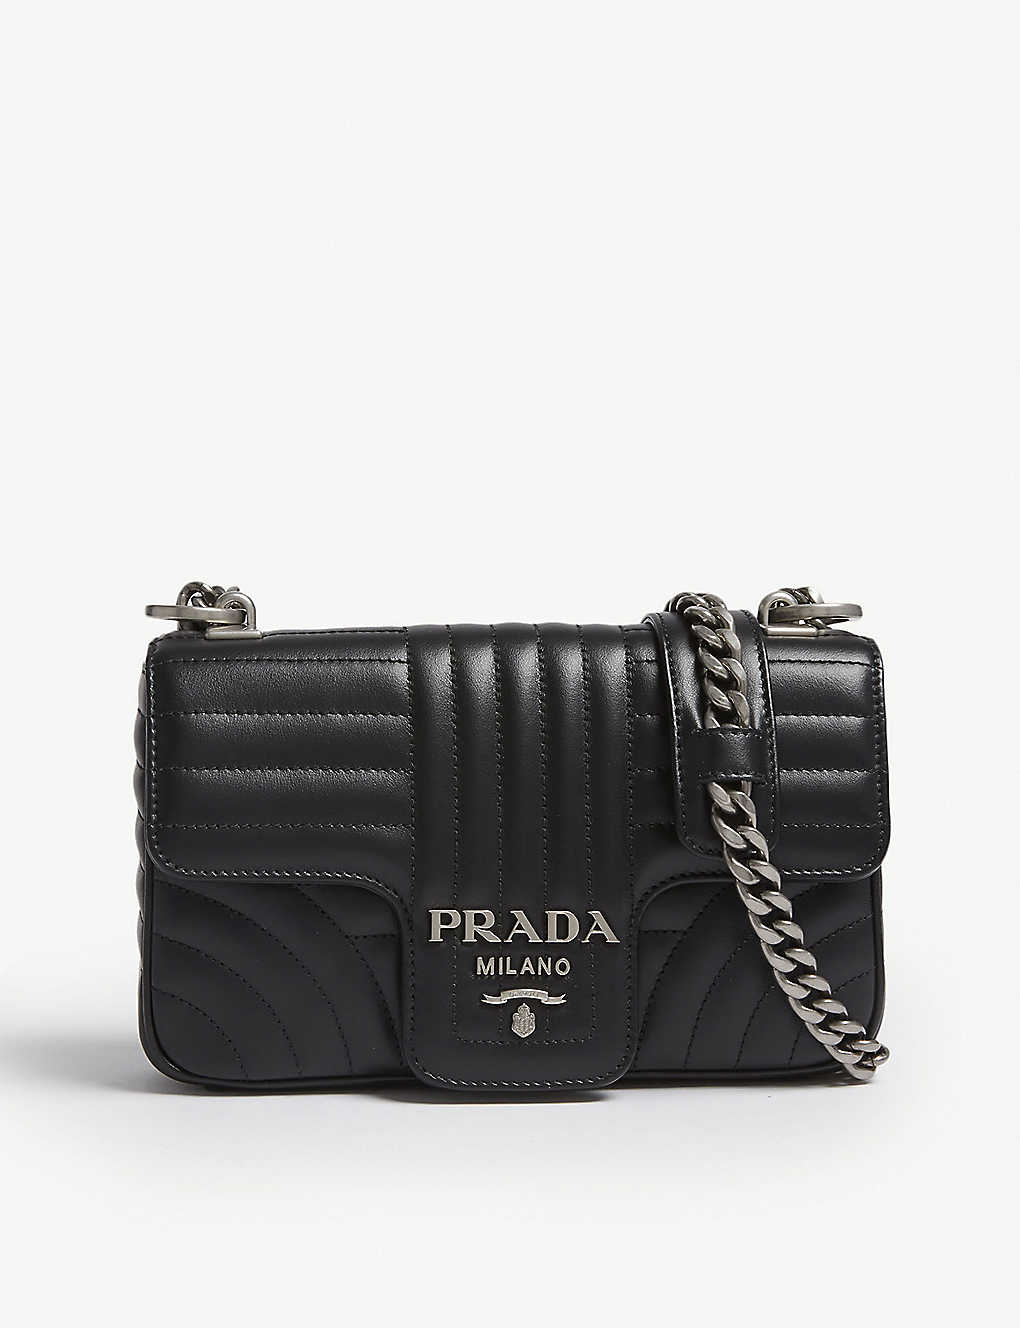 0a15e5819bf961 PRADA - Diagramme small quilted leather shoulder bag | Selfridges.com